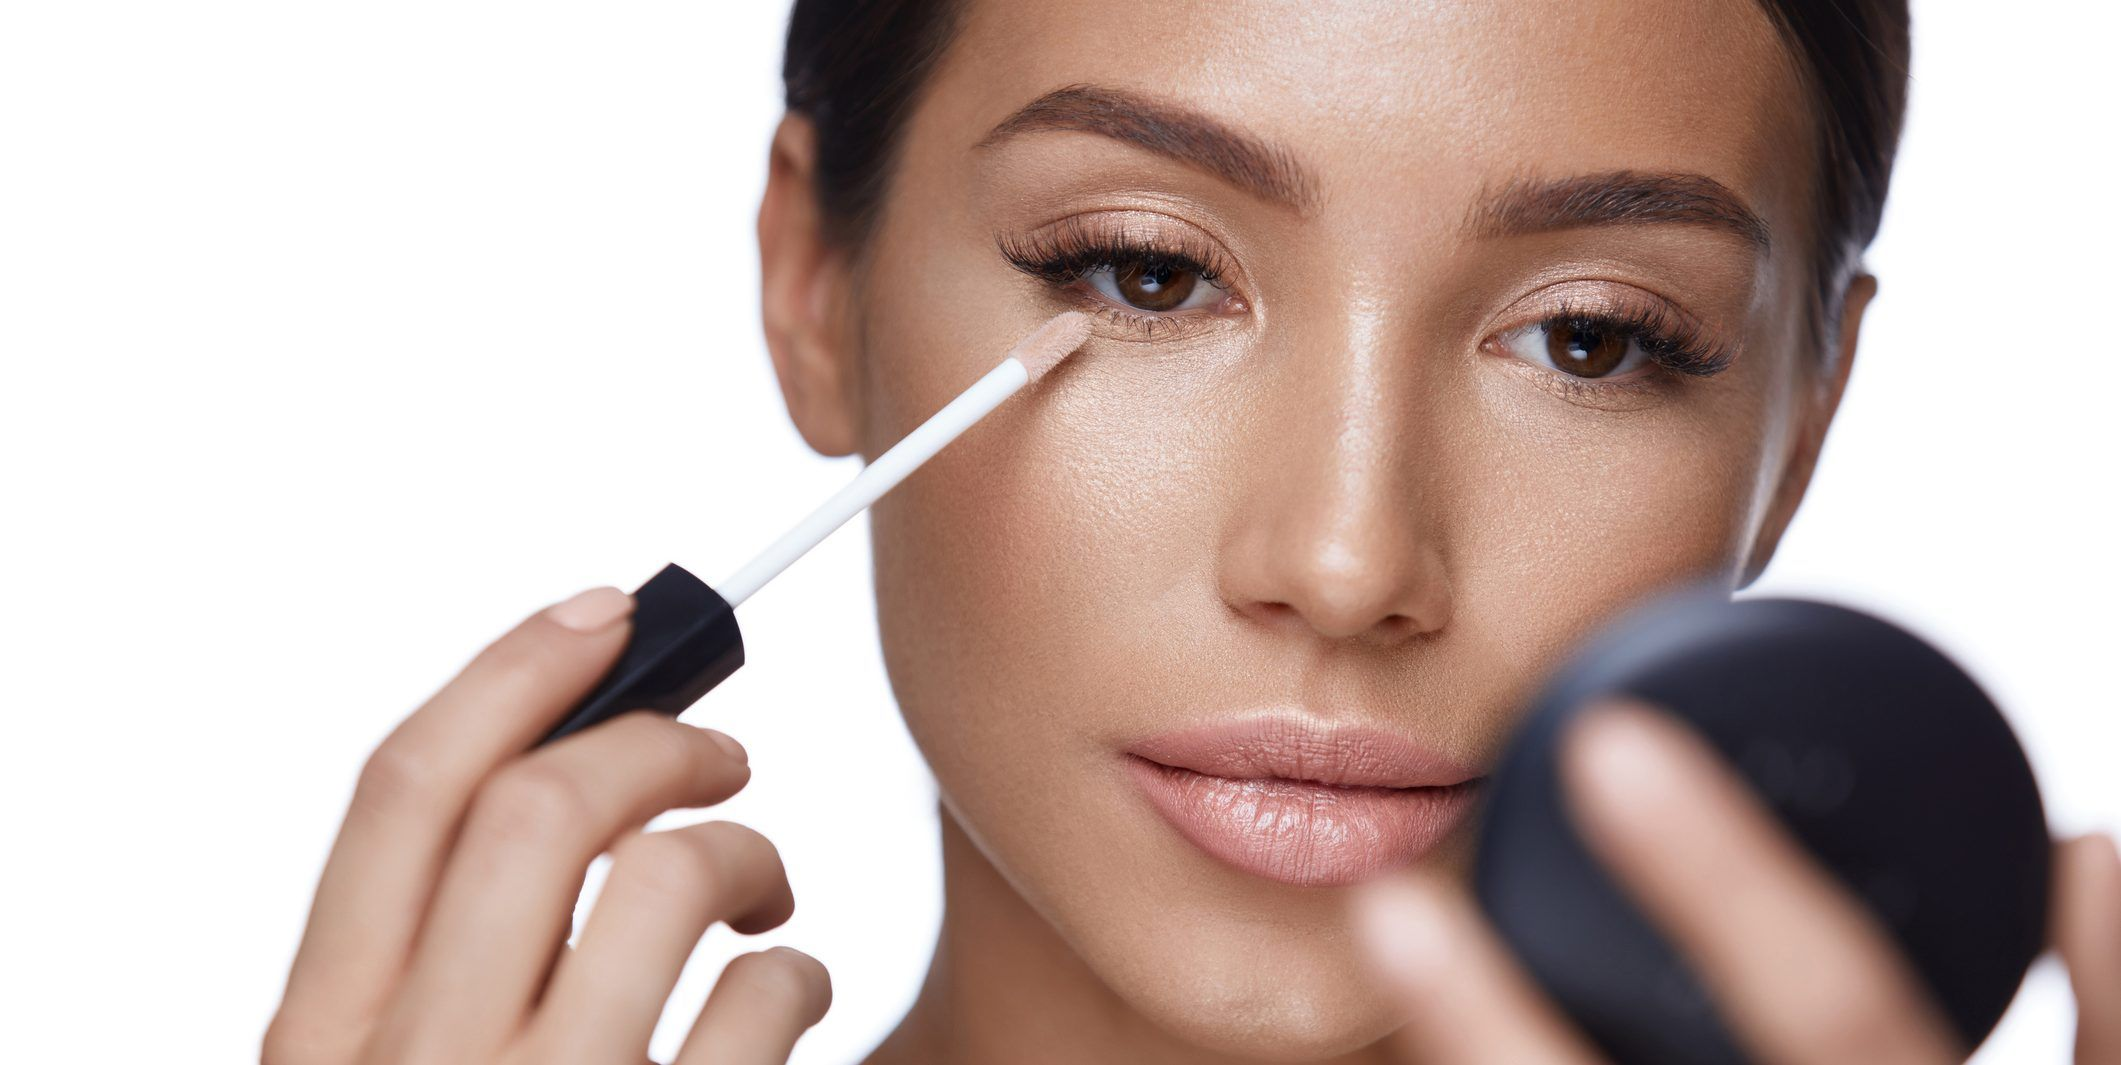 Our tips for choosing the best concealer for your skin